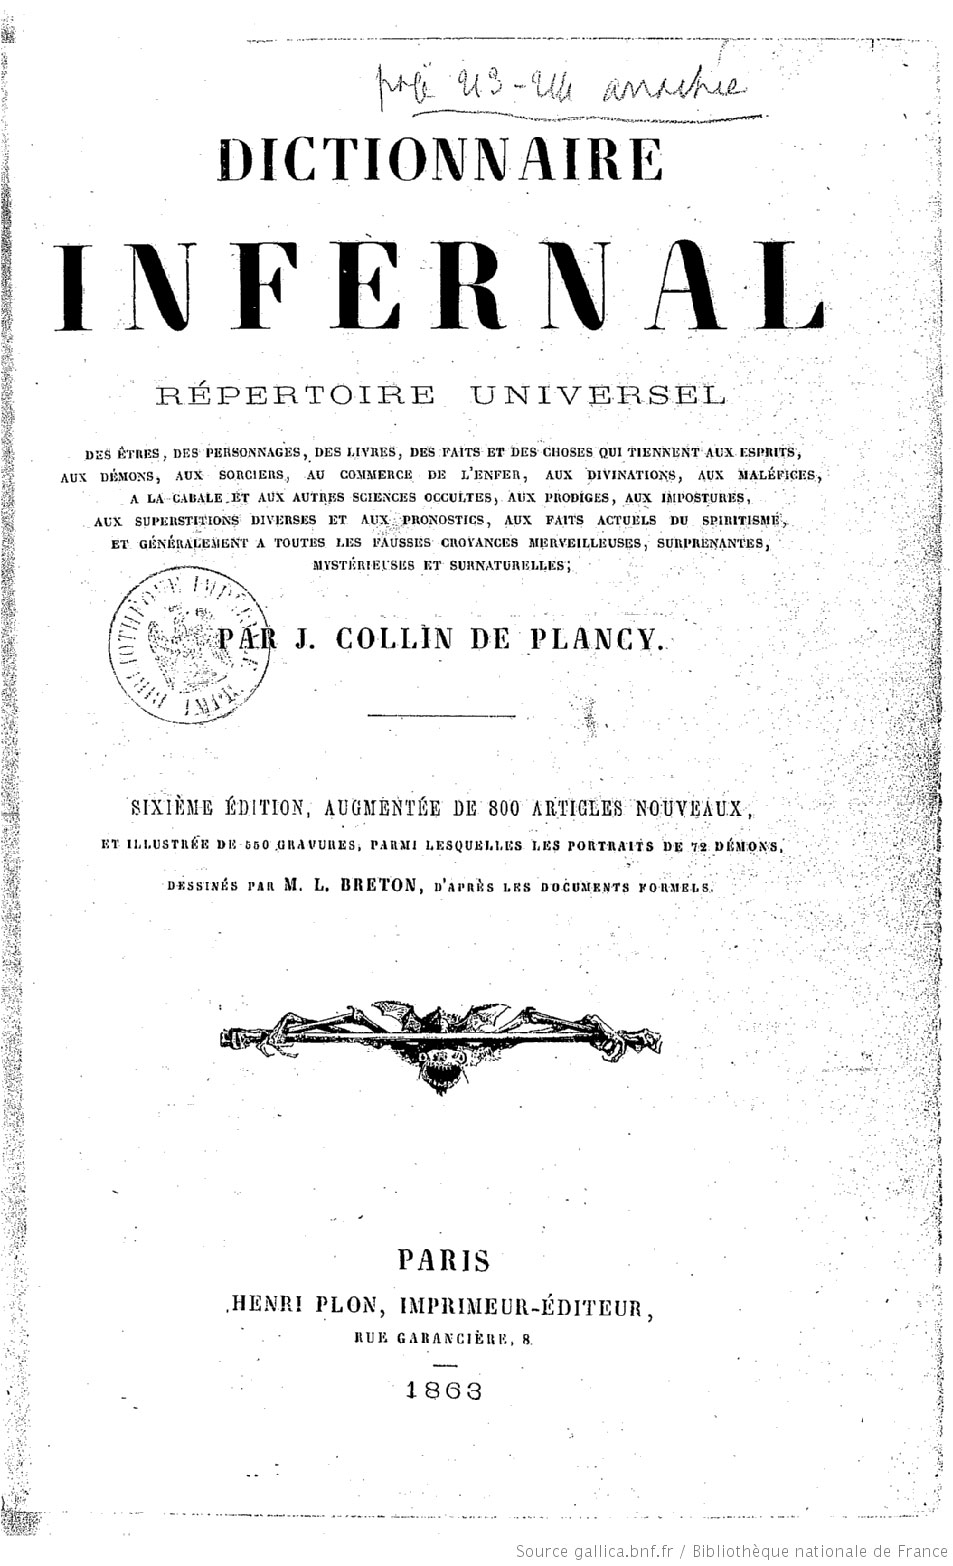 Dictionnaire-infernal1